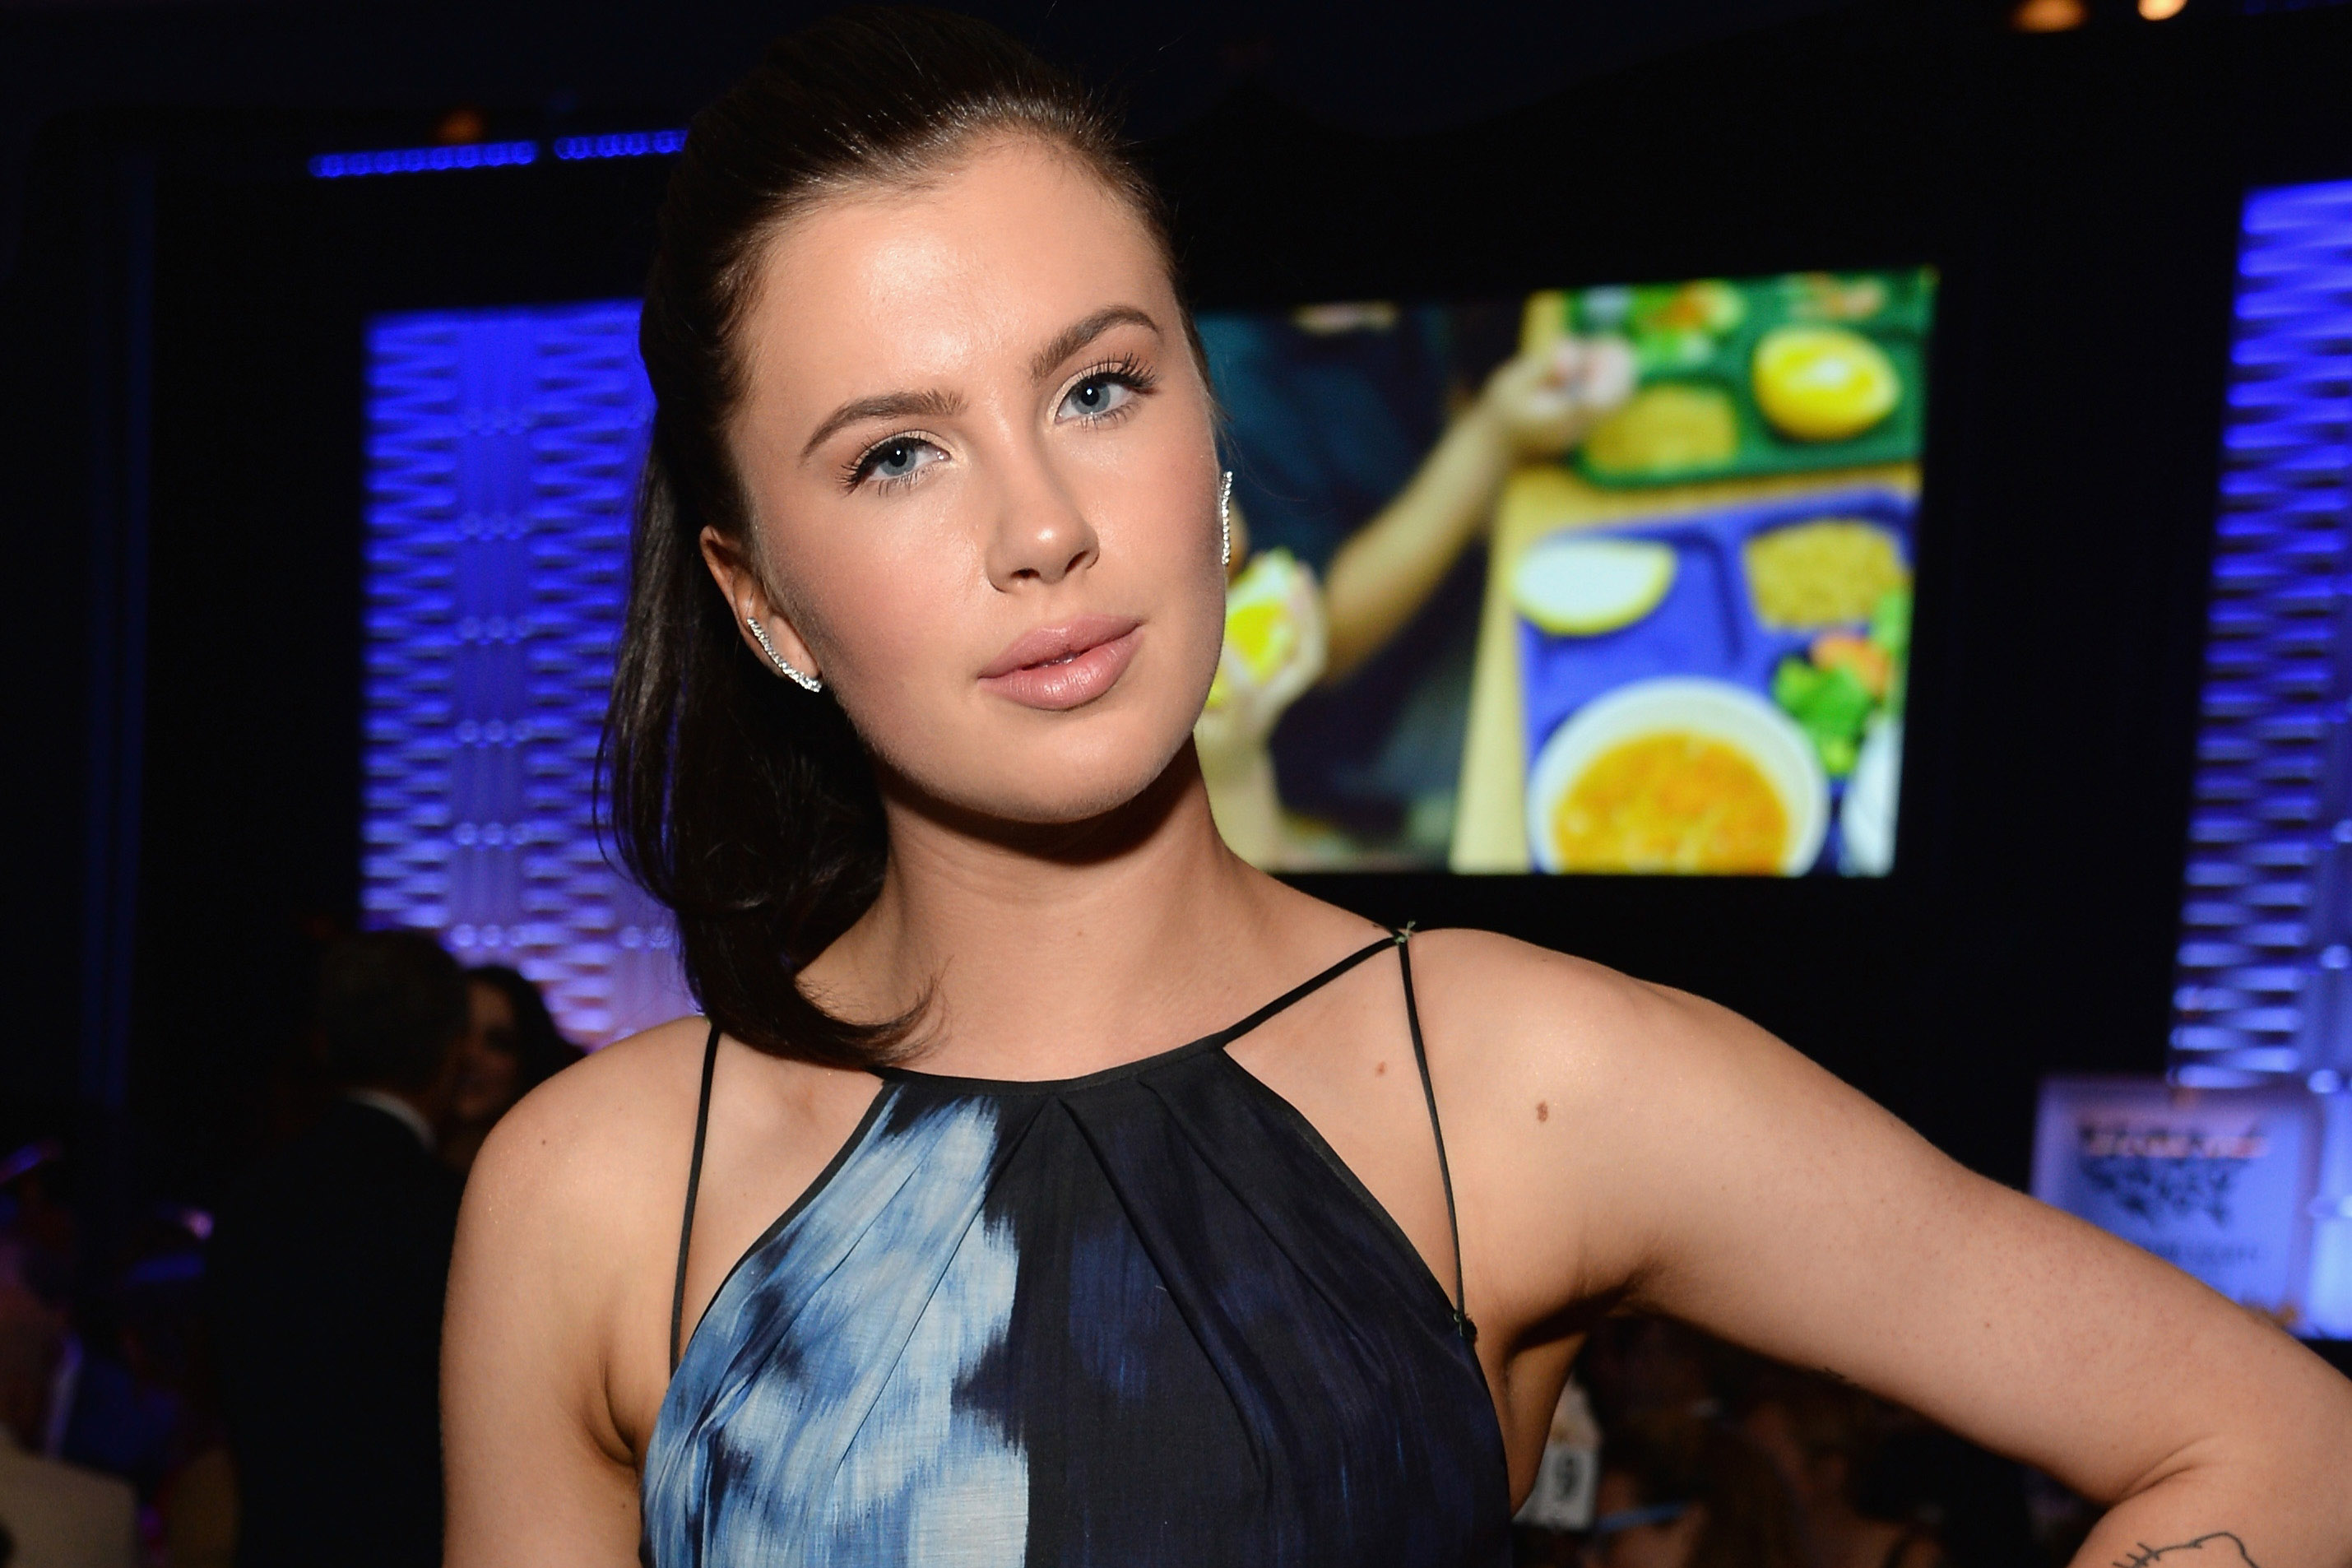 Ireland Baldwin Signs With Modeling Agency, Says She Feels